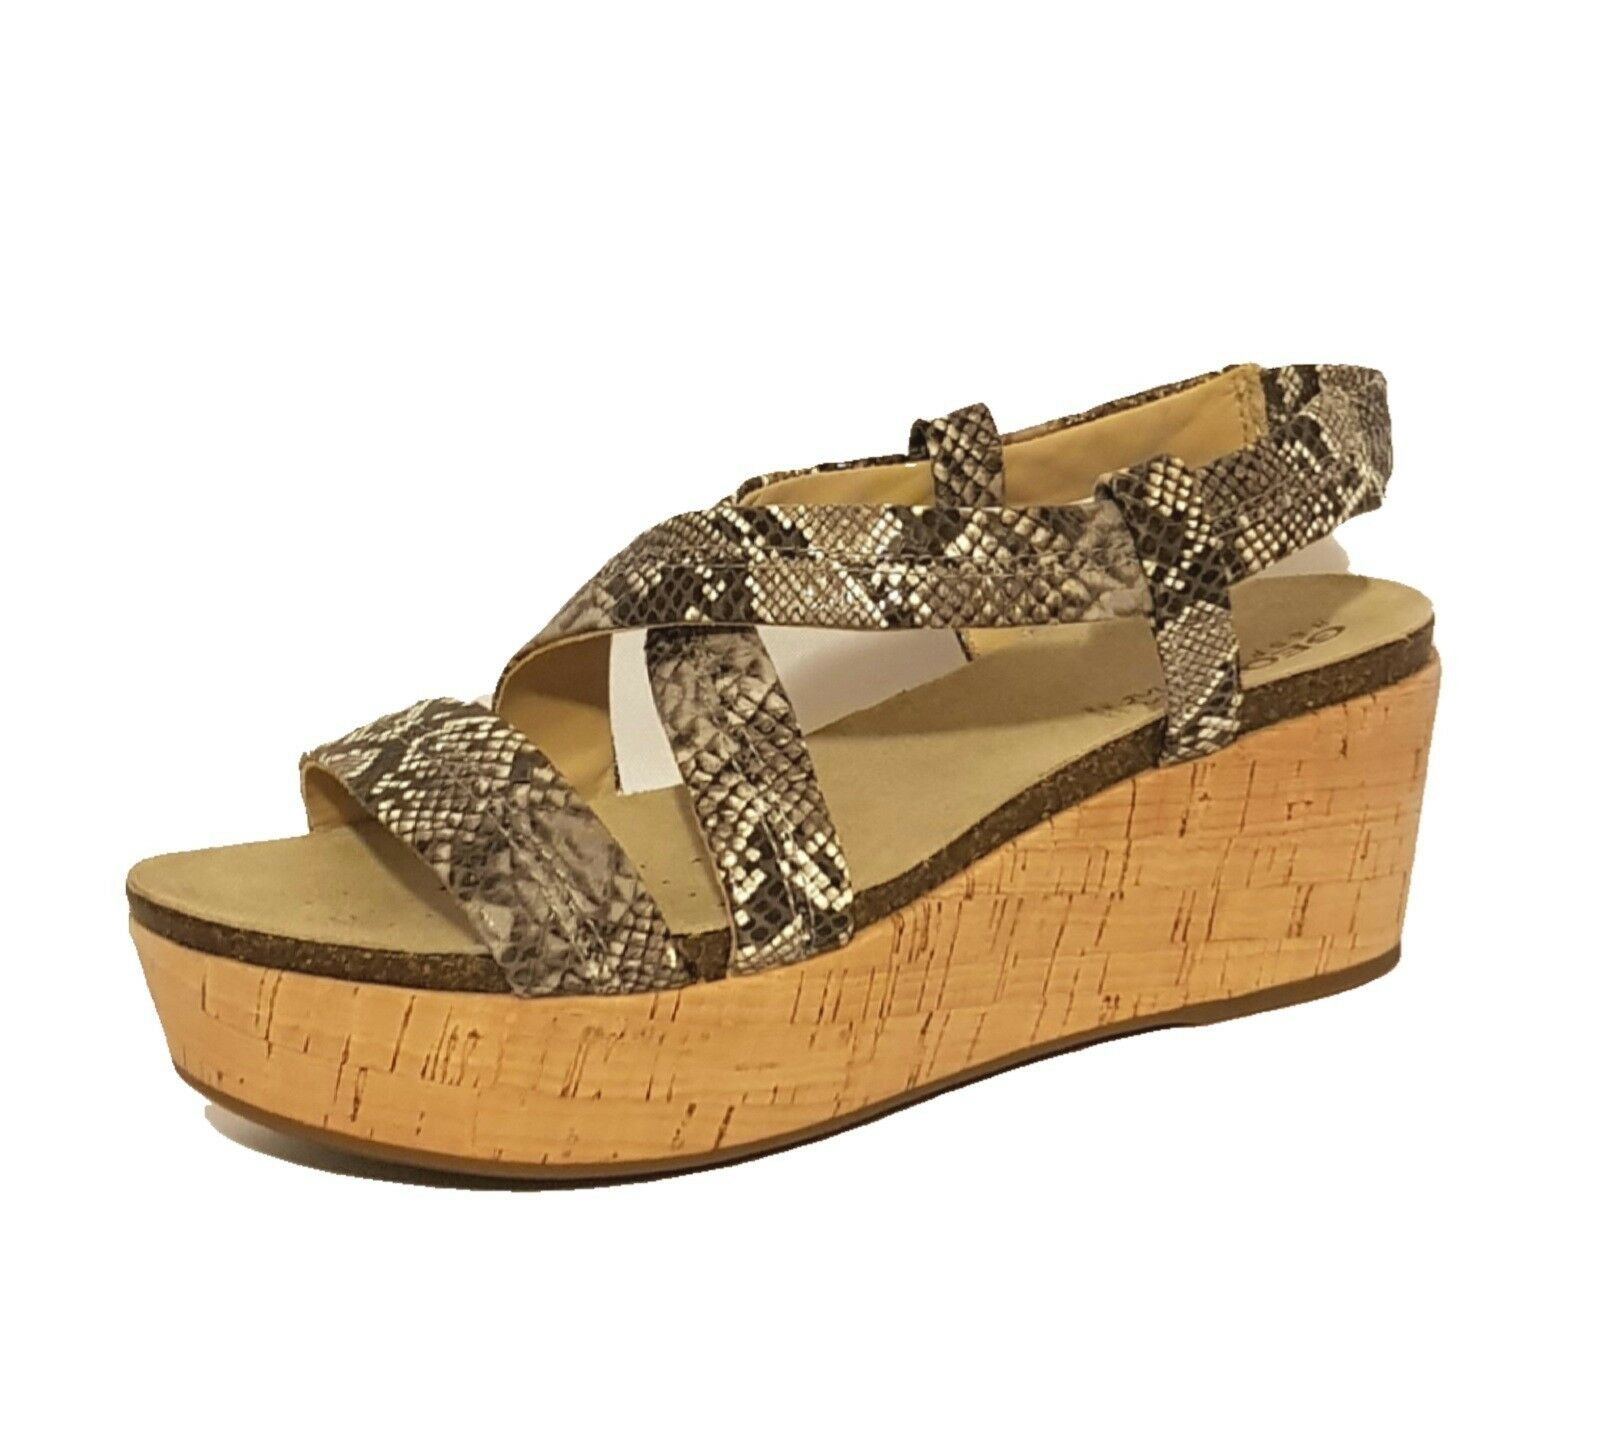 GEOX RESPIRA D JALIA   SANDALS SNAKE GENUINE LEATHER WEDGES SANDALS  SHOES LADIES 926bf6